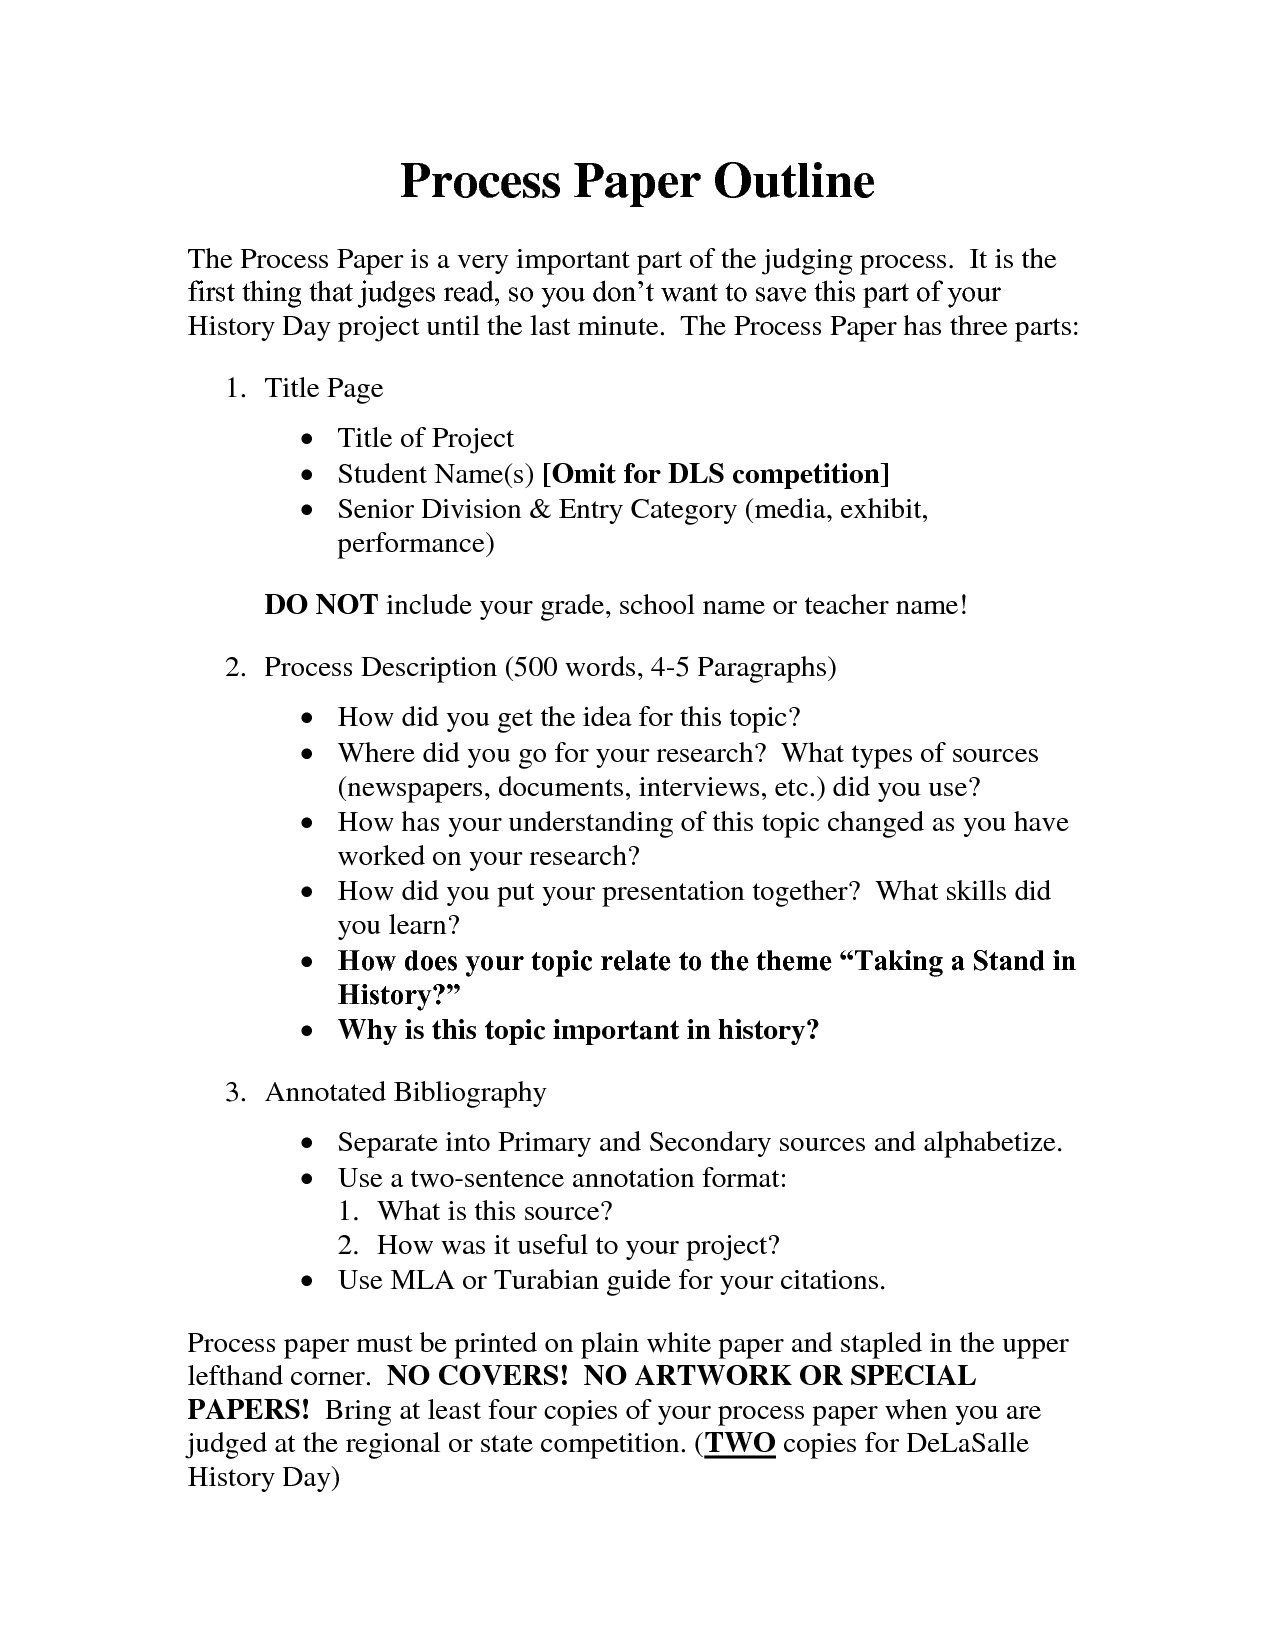 Process essay samples